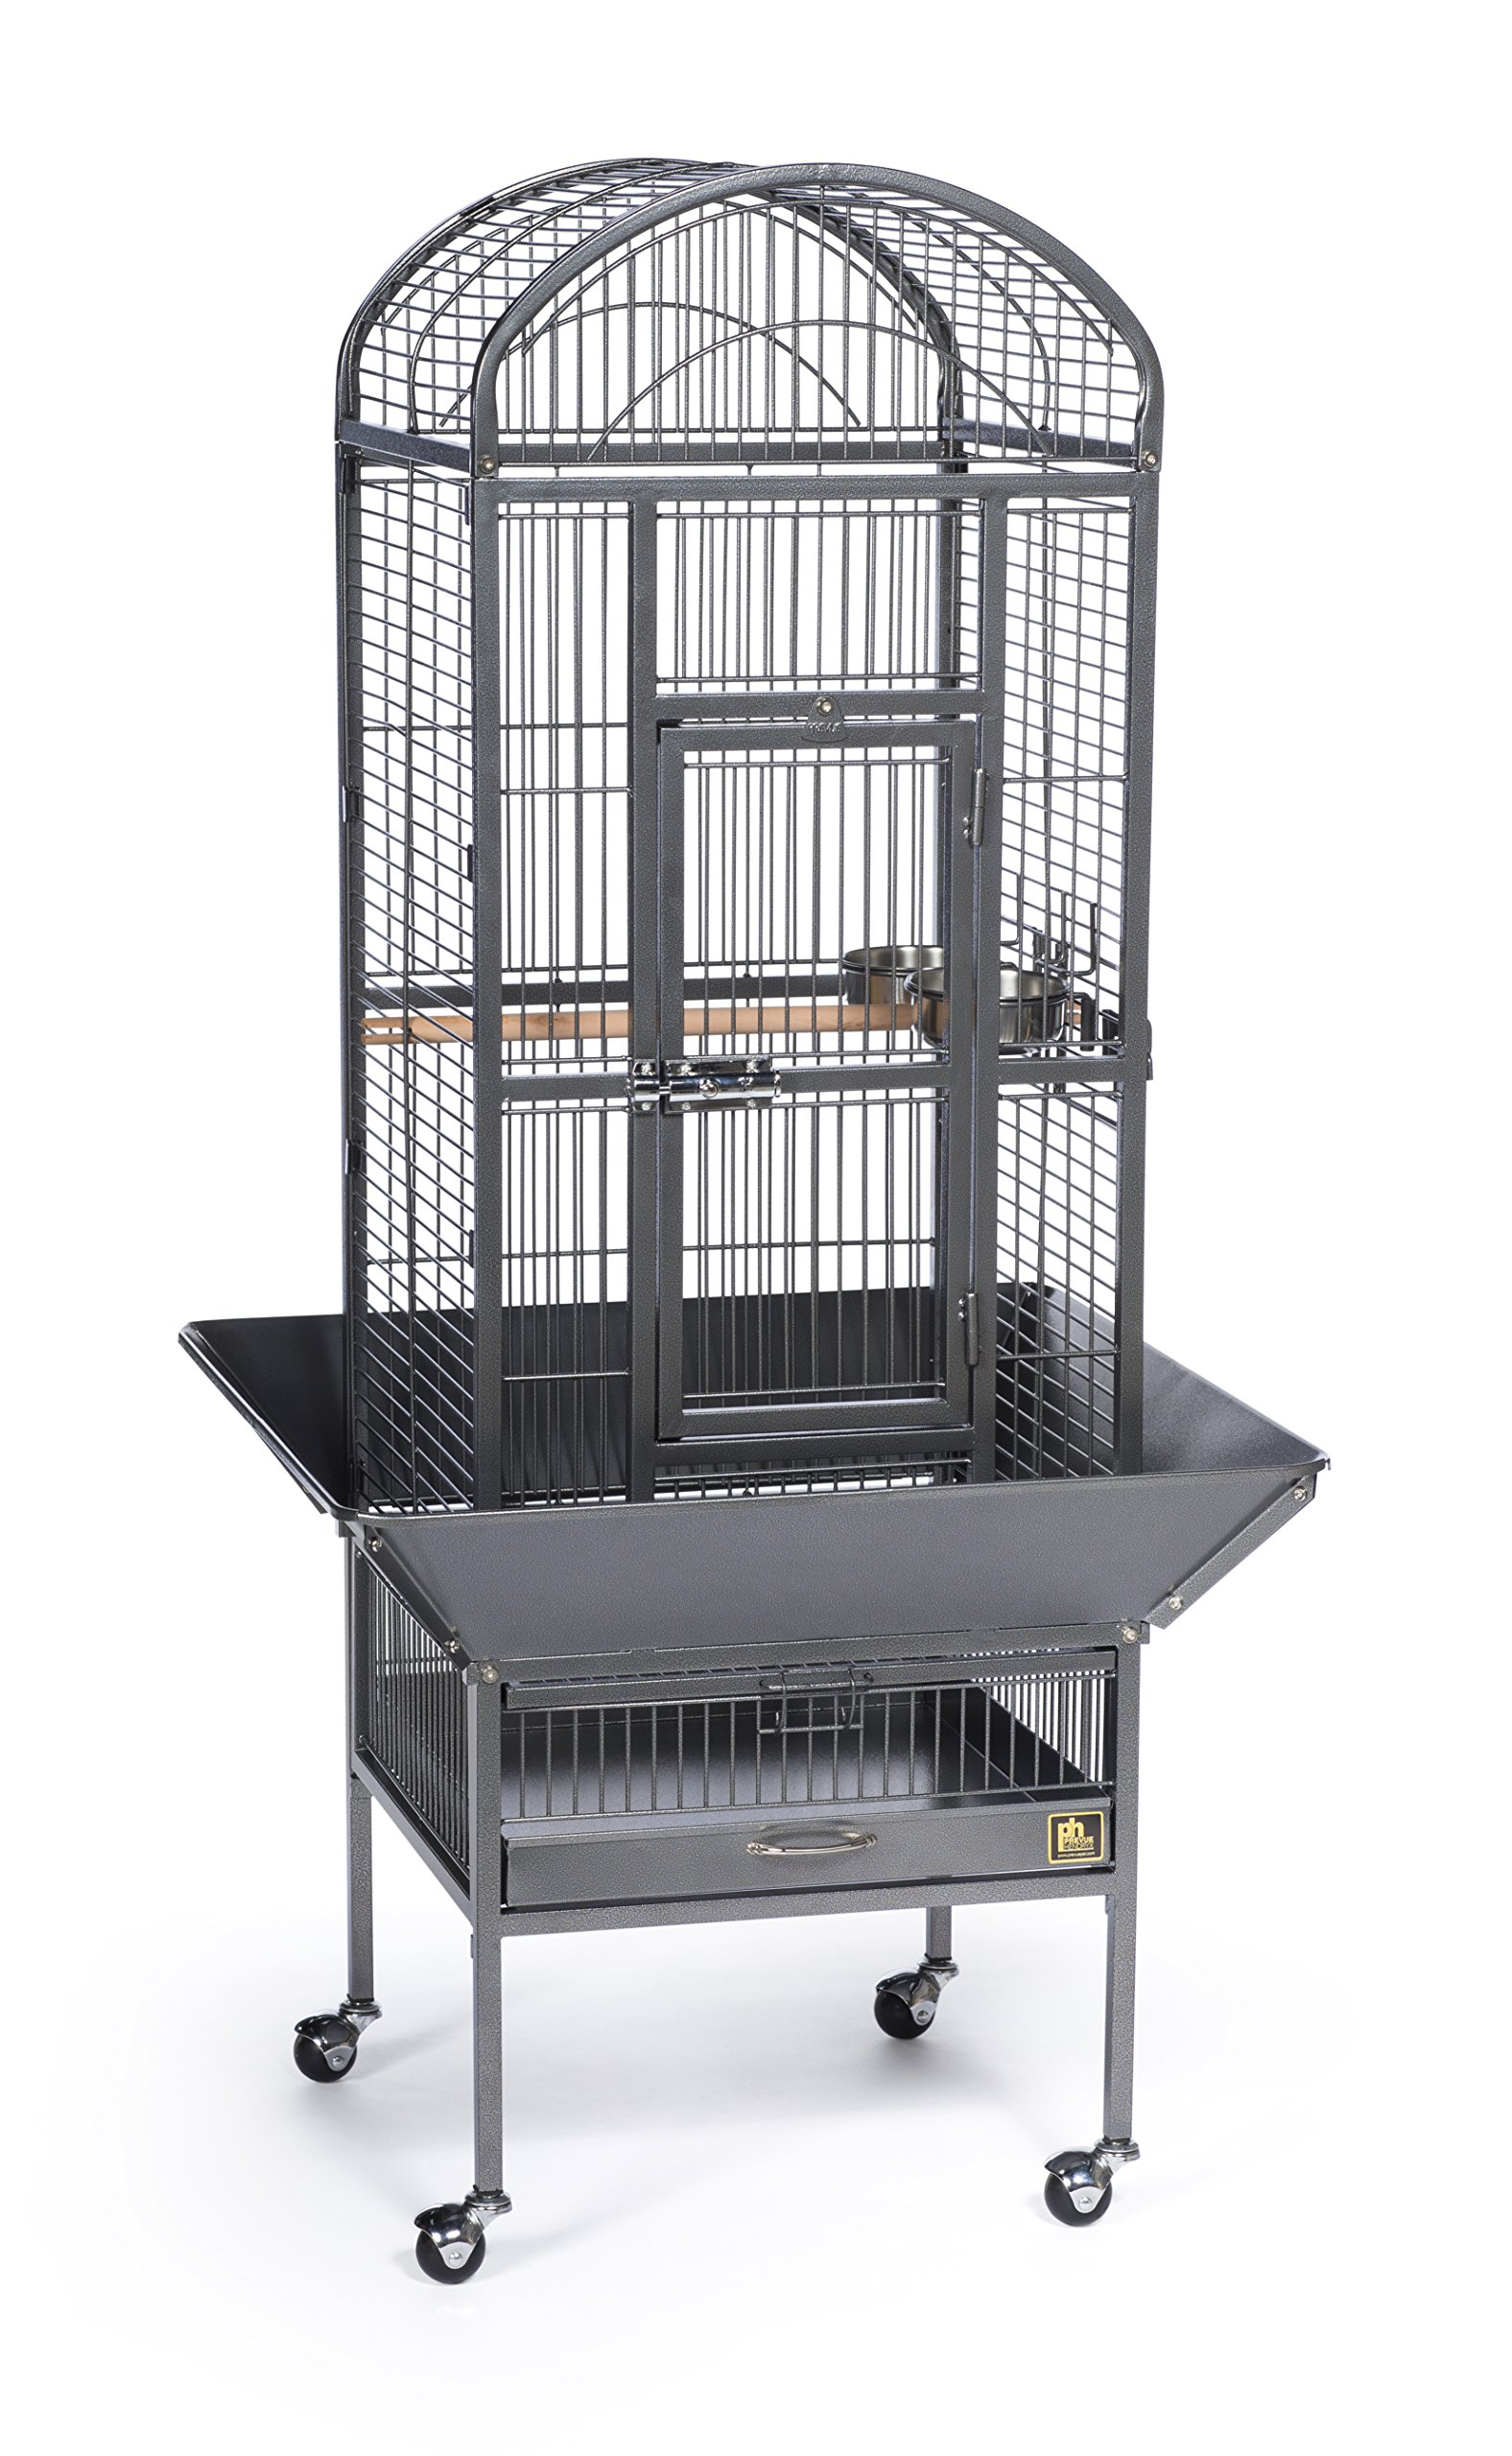 Prevue Pet Products 34511 Dometop Bird Cage, Small, Black Hammertone by Prevue Pet Products